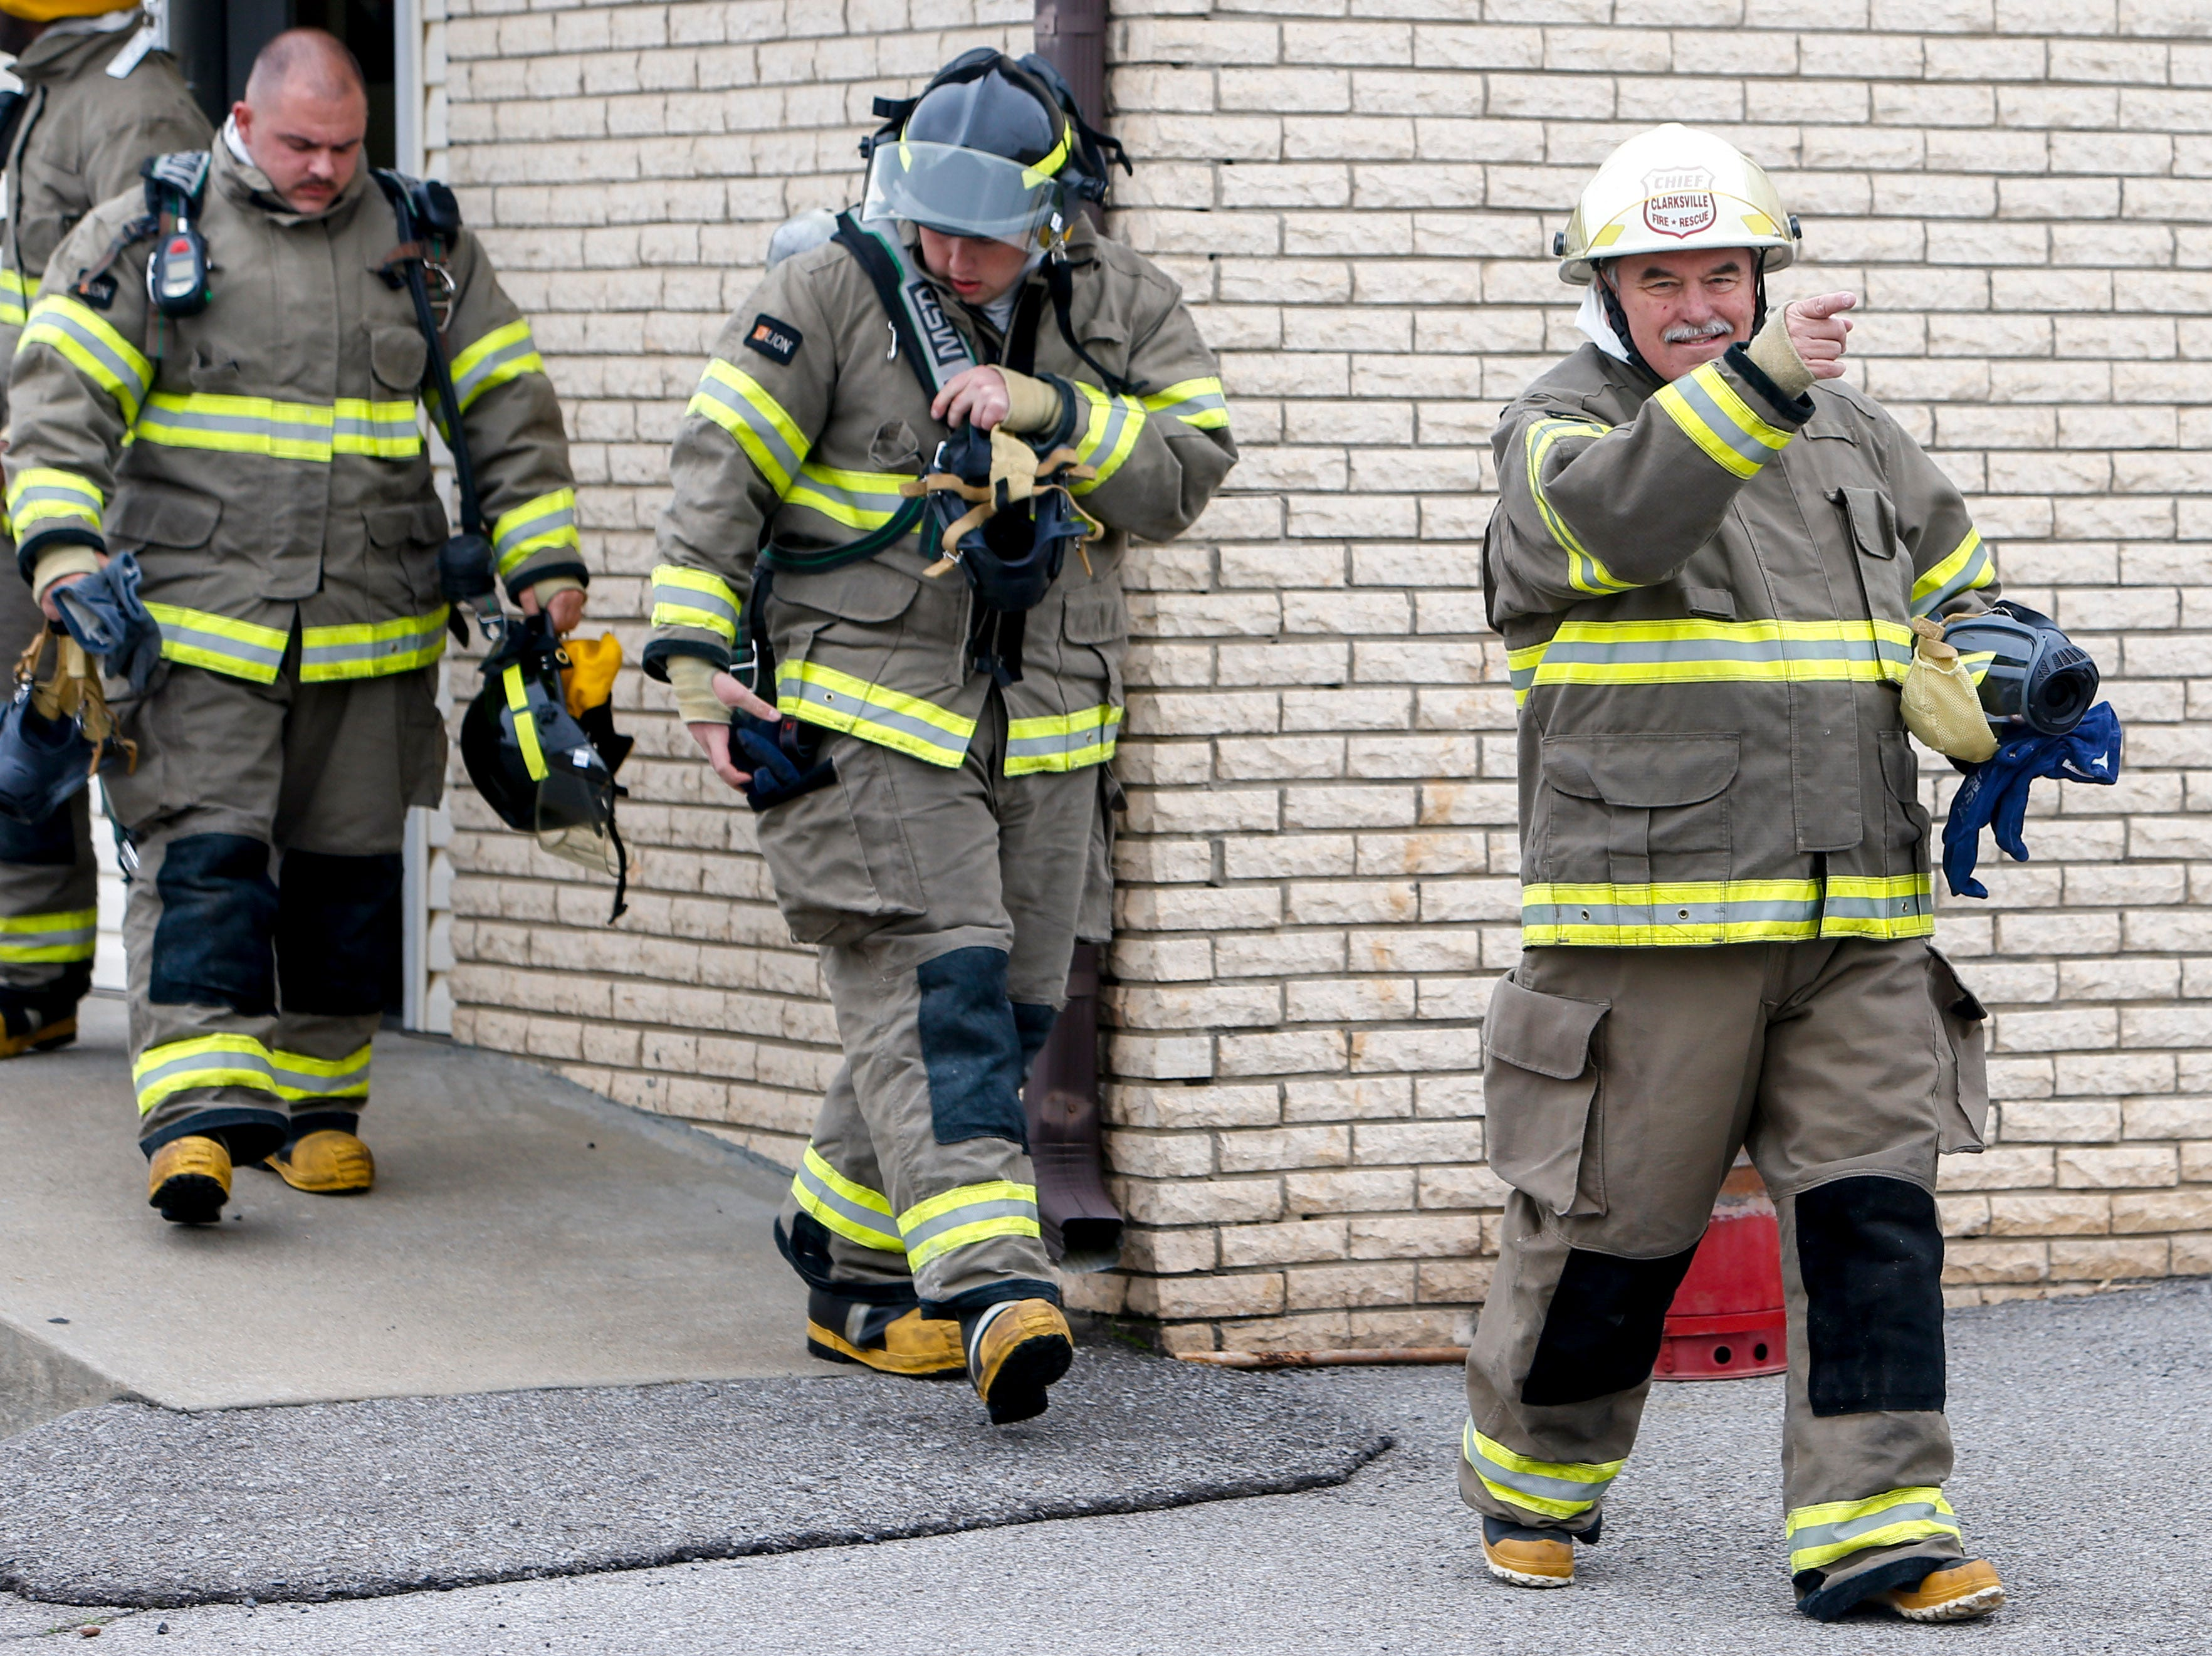 Chief Mike Roberts points to a friend and smiles after emerging from a building in his full uniform at Clarksville Fire Rescue in Clarksville, Tenn., on Friday, May 10, 2019.